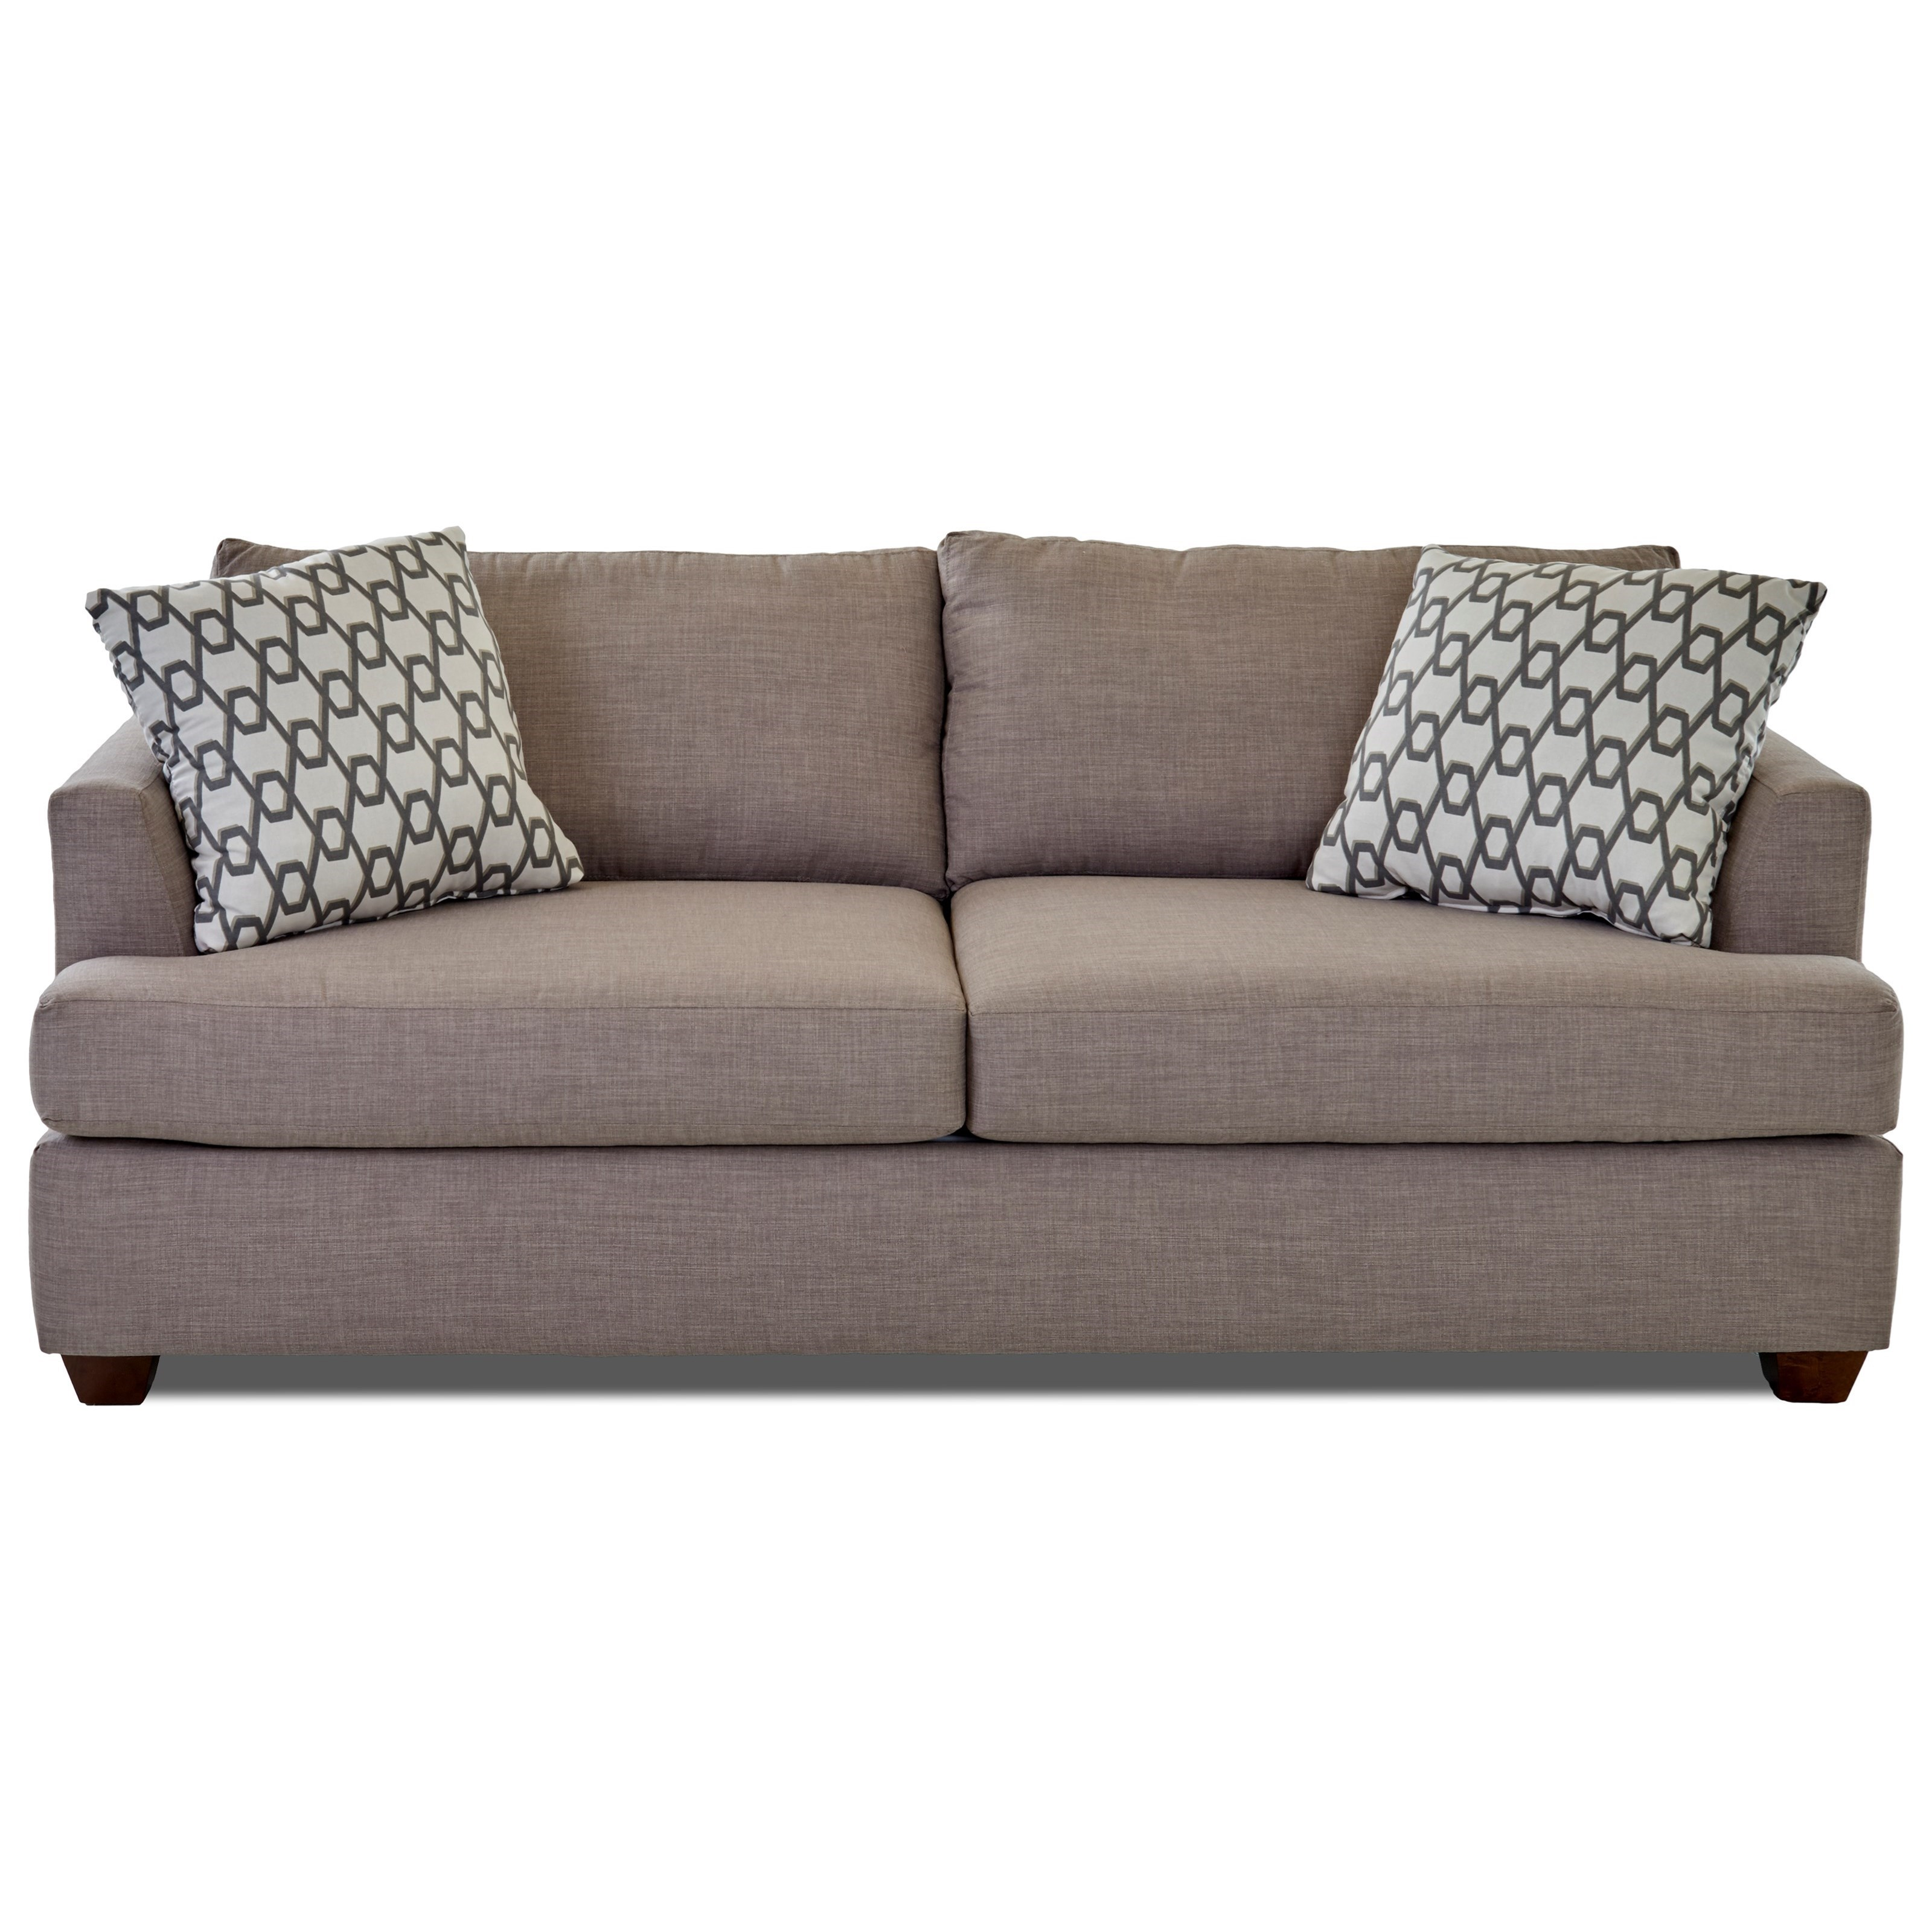 Queen Inner Spring Sleeper Sofa with Track Arms